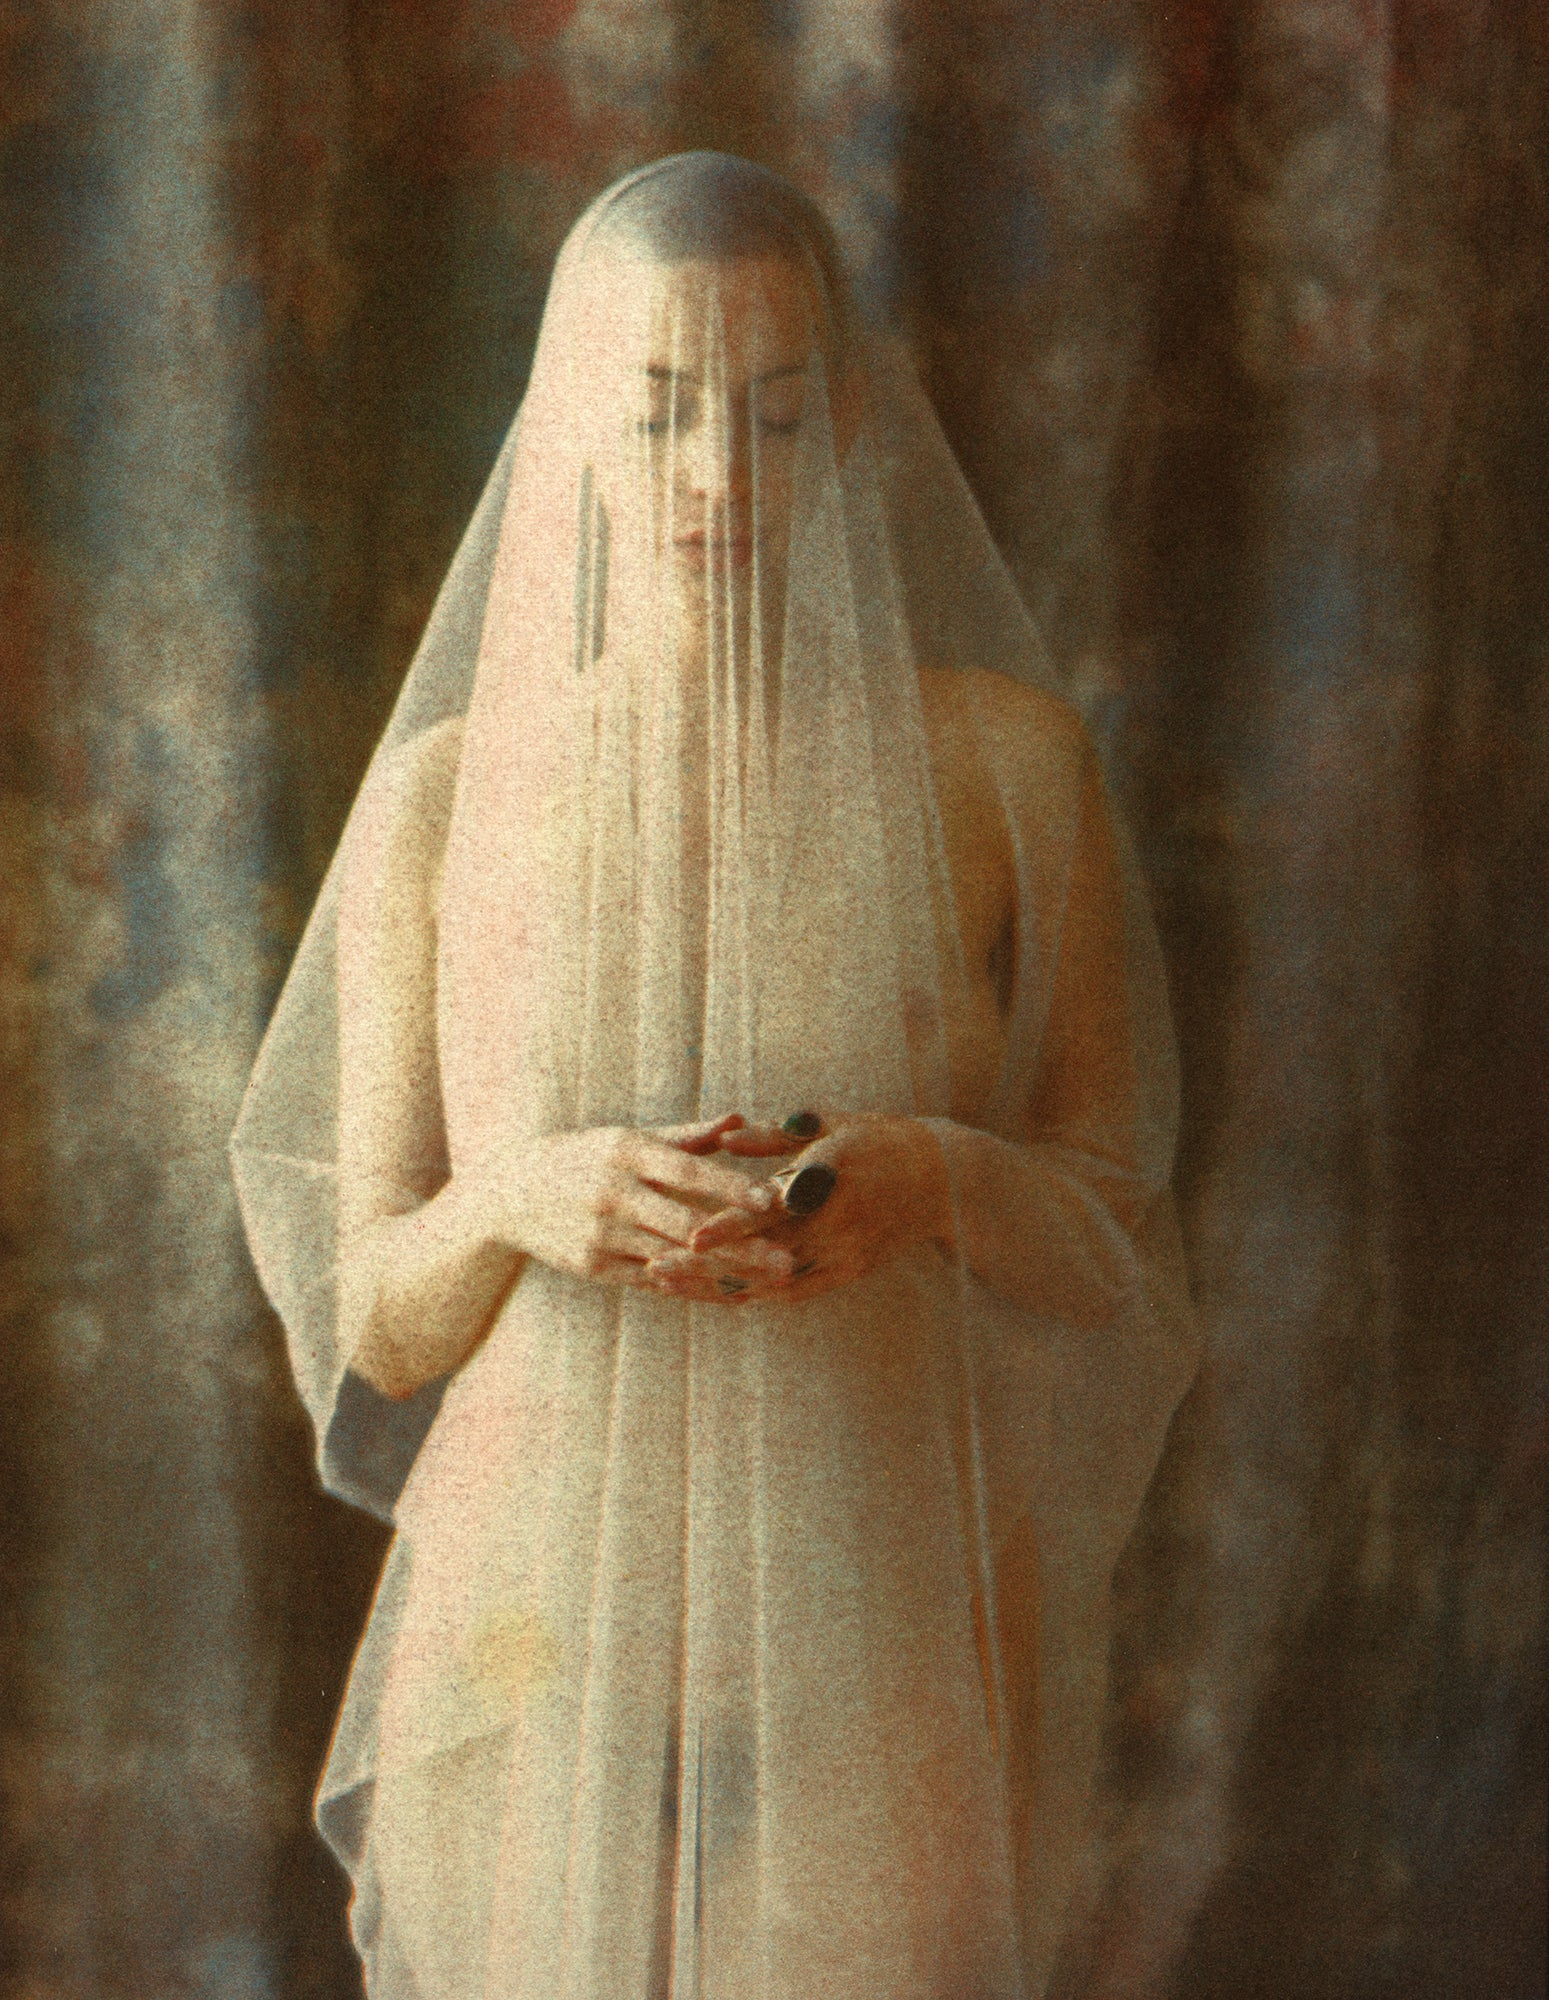 Draped nude: Tri-color gum bichromate print